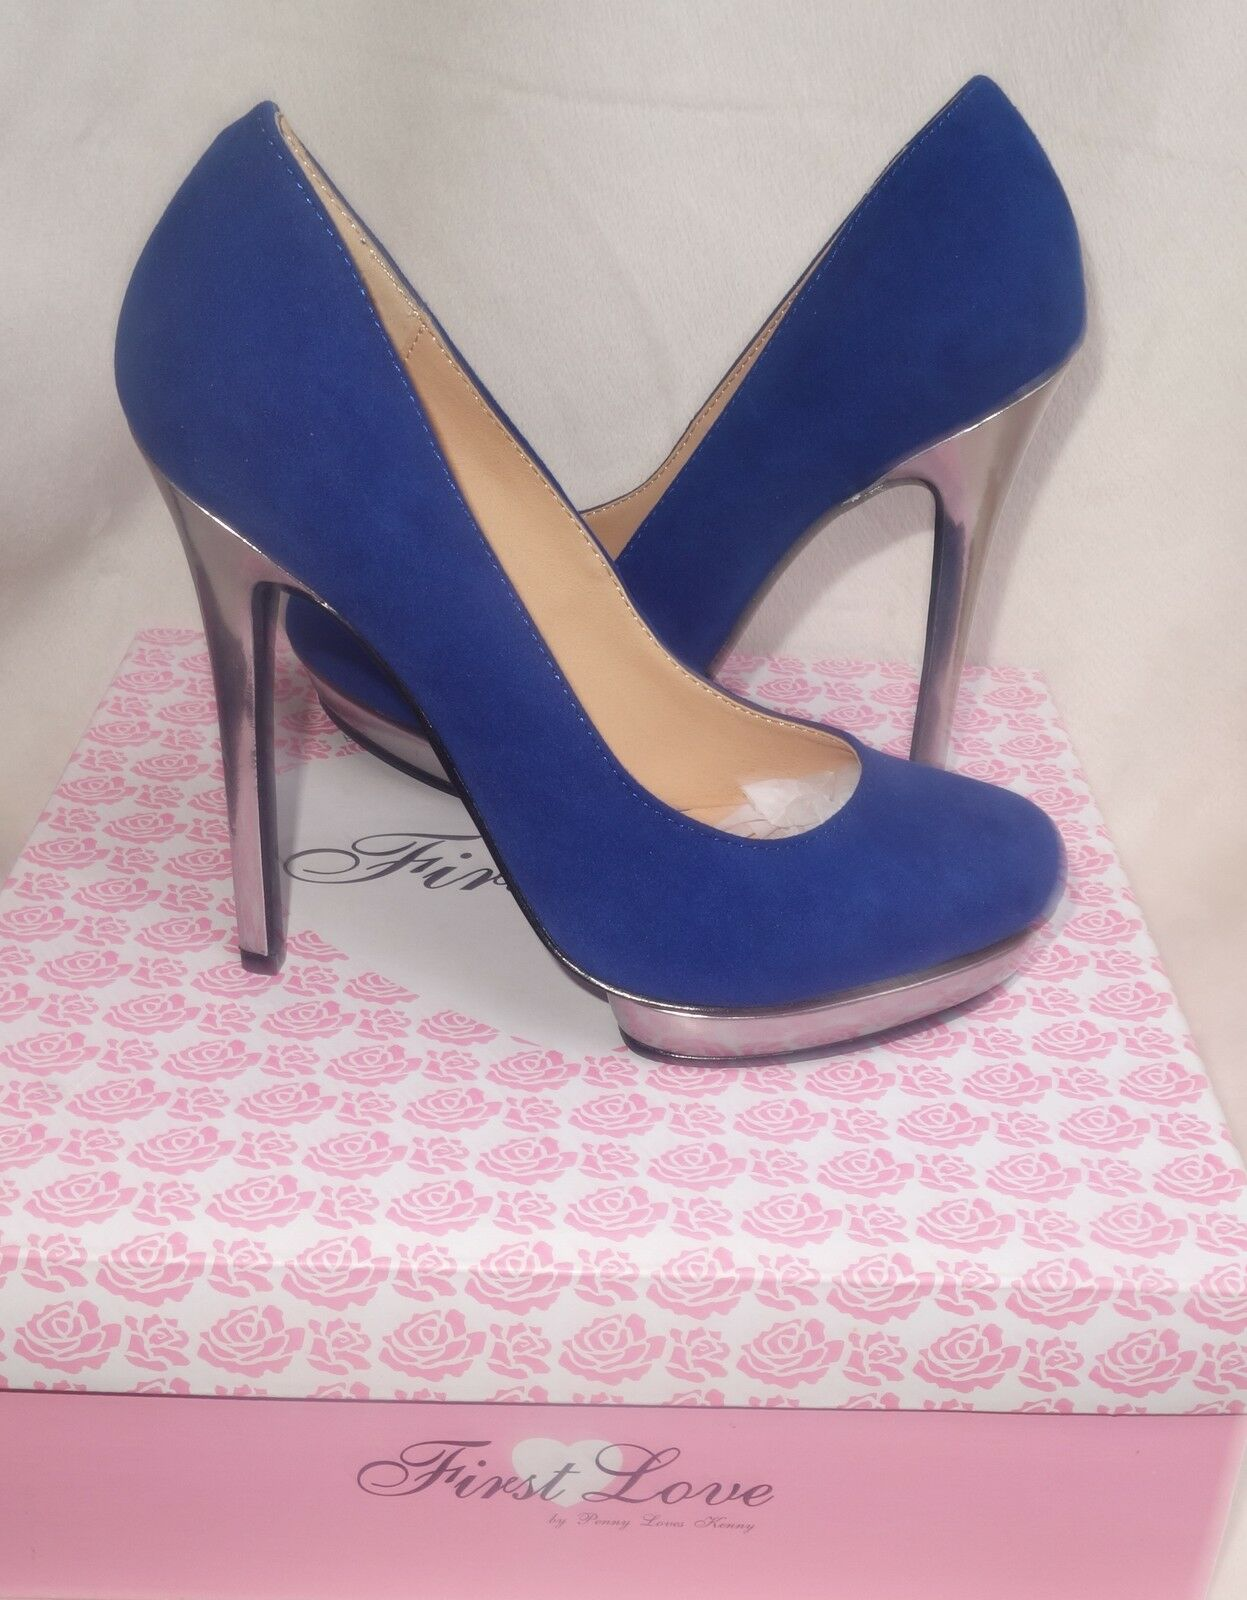 Firts Love By Penny Loves Kenny Royal Blue Pumps Size 6.5 new